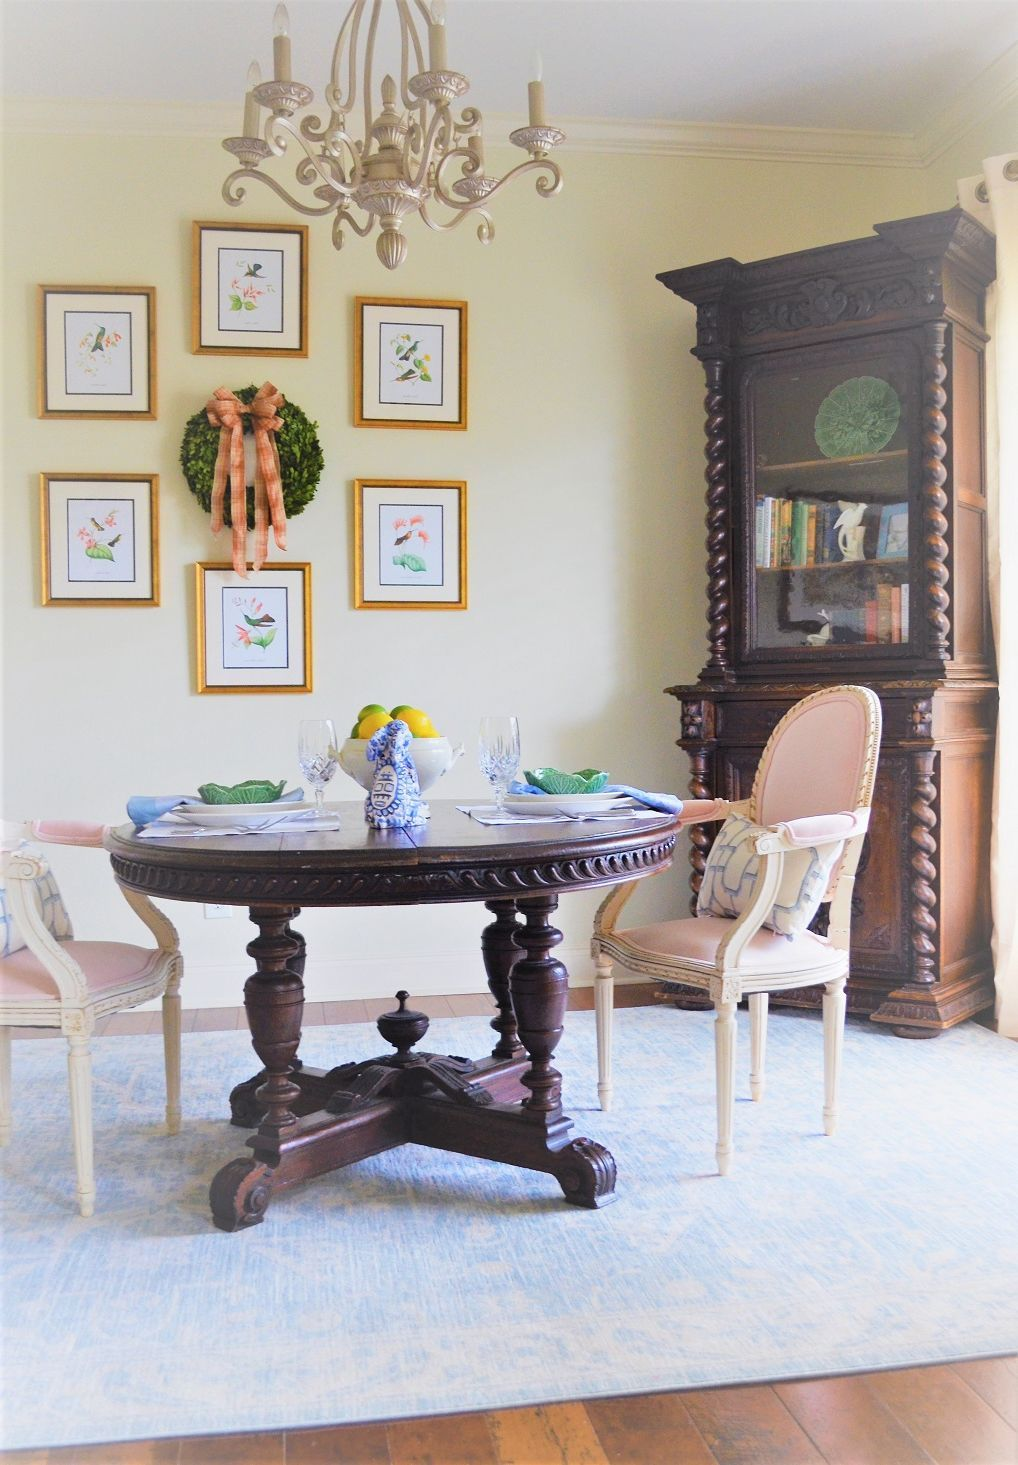 Décor for Formal Dining Room Designs - Decor Around The ...